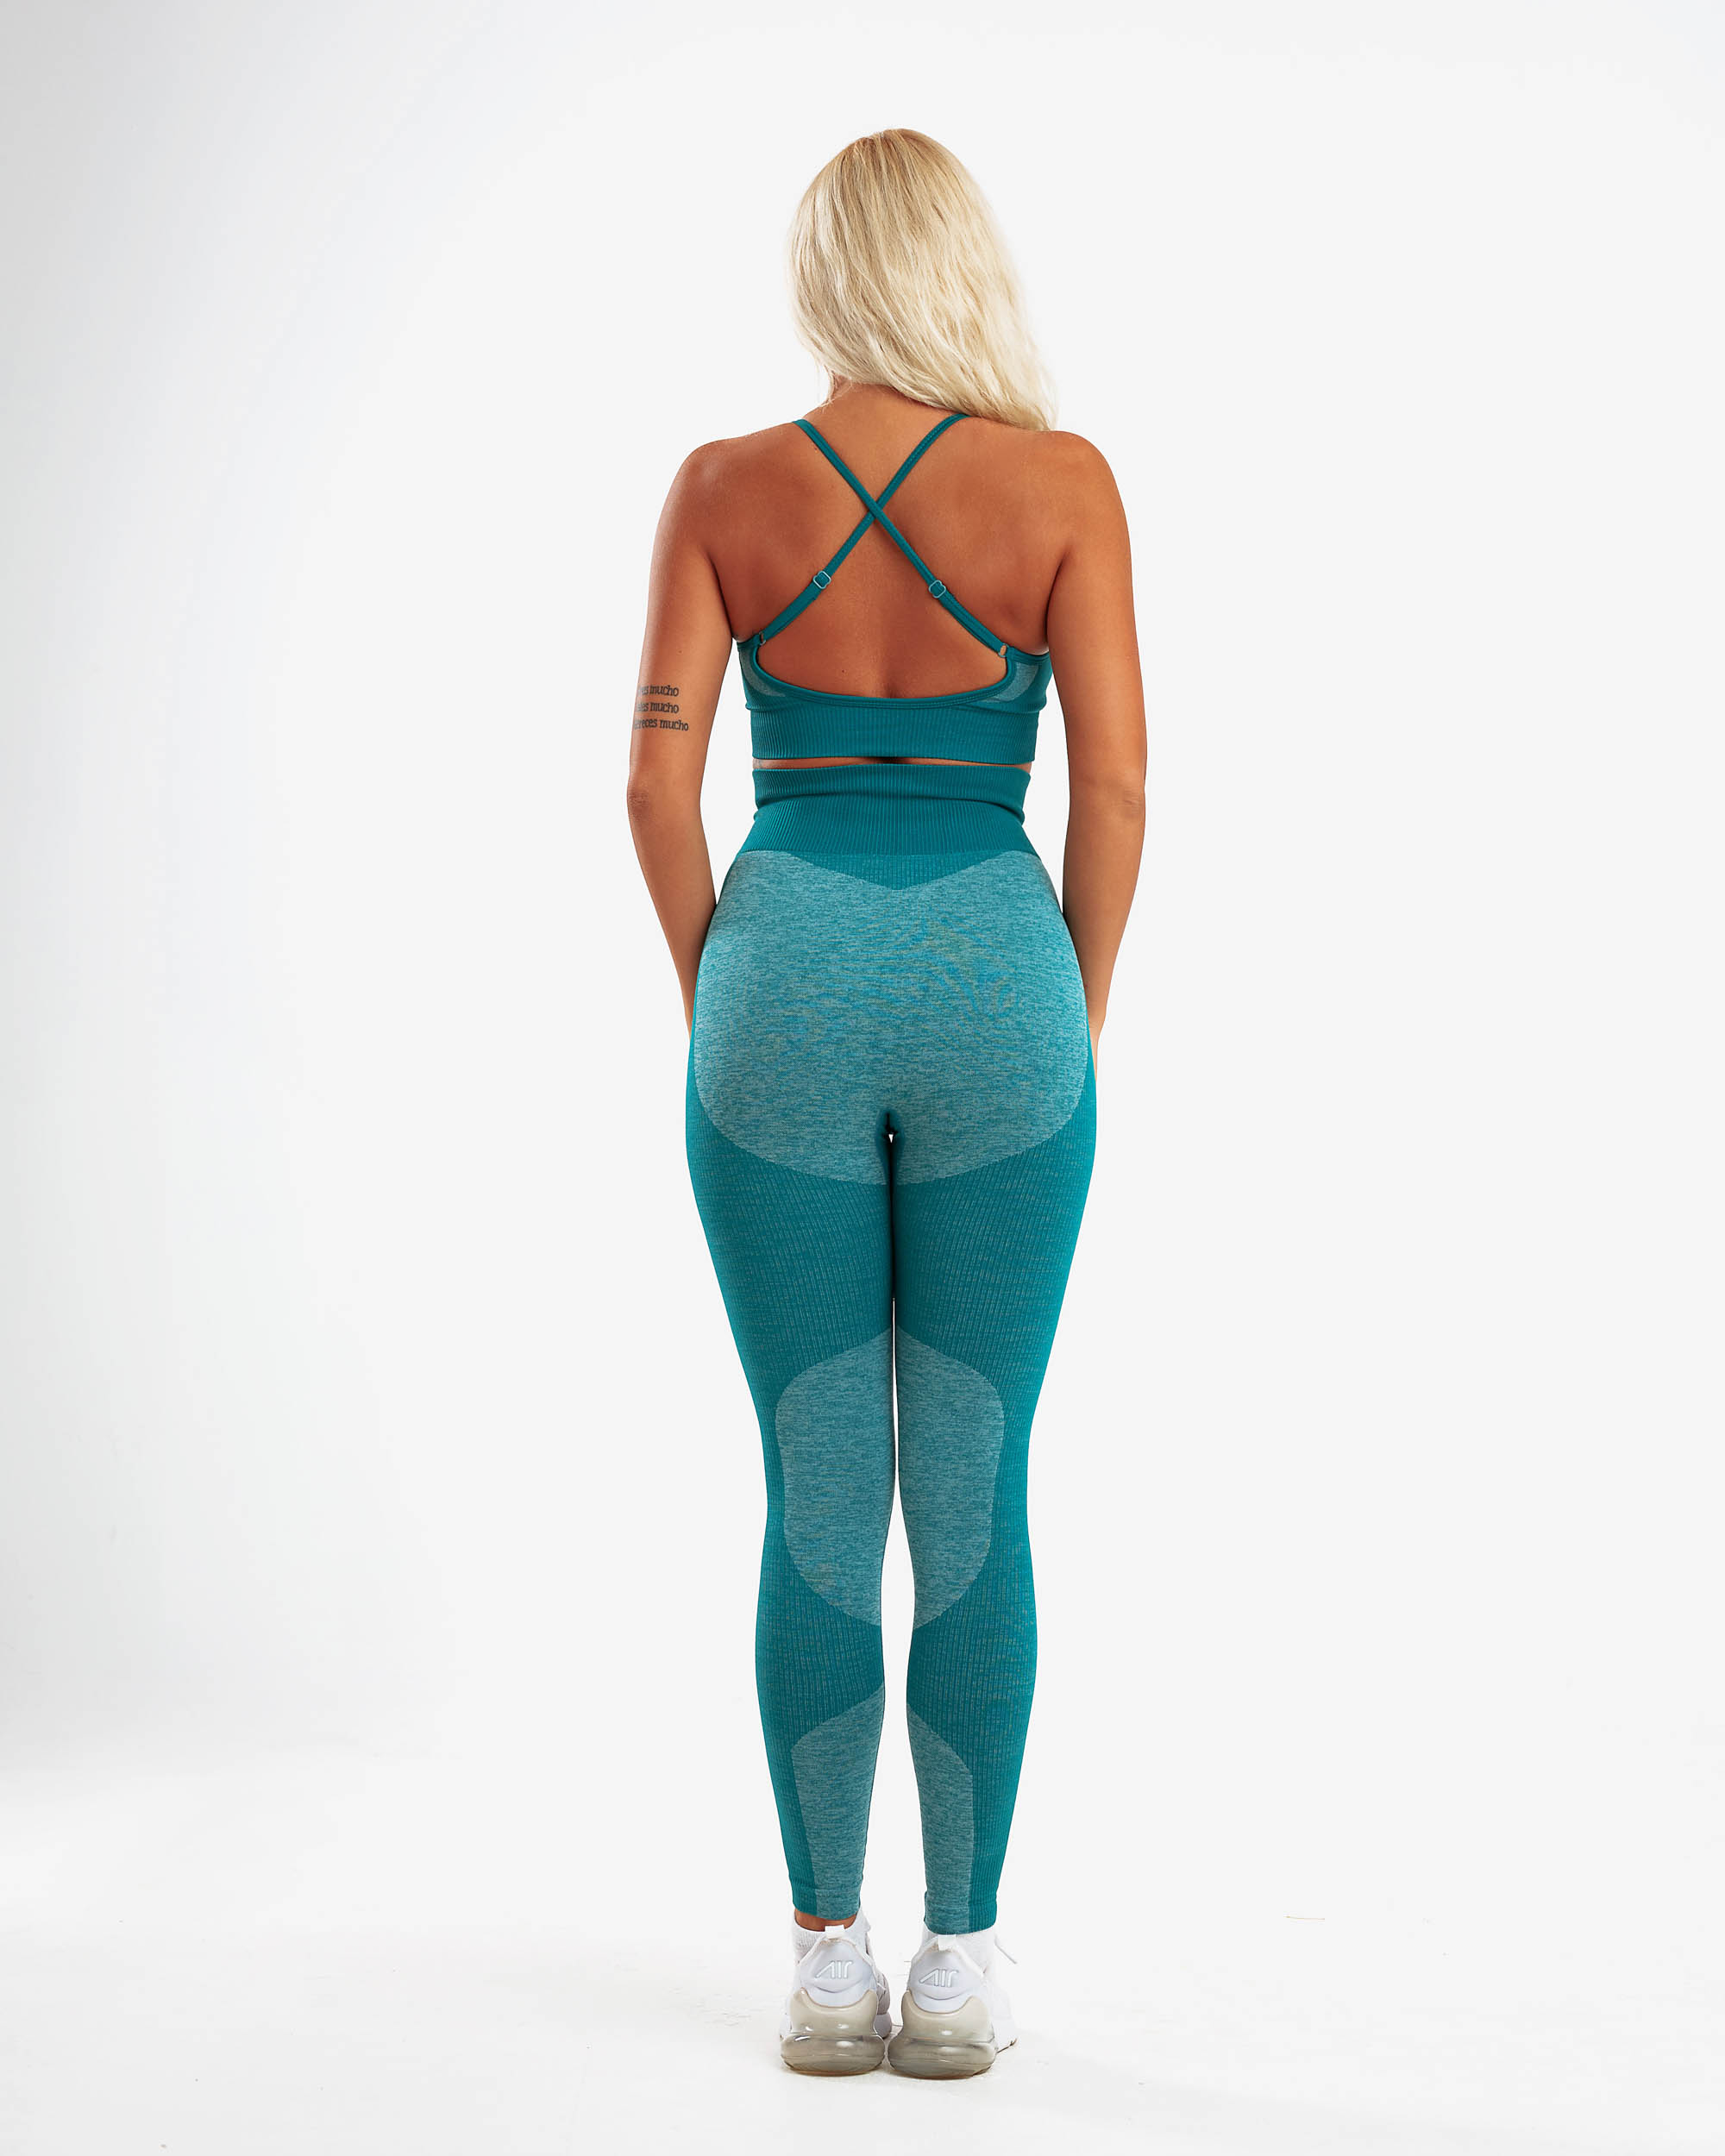 PM STRETCHY SEAMLESS SET GREEN